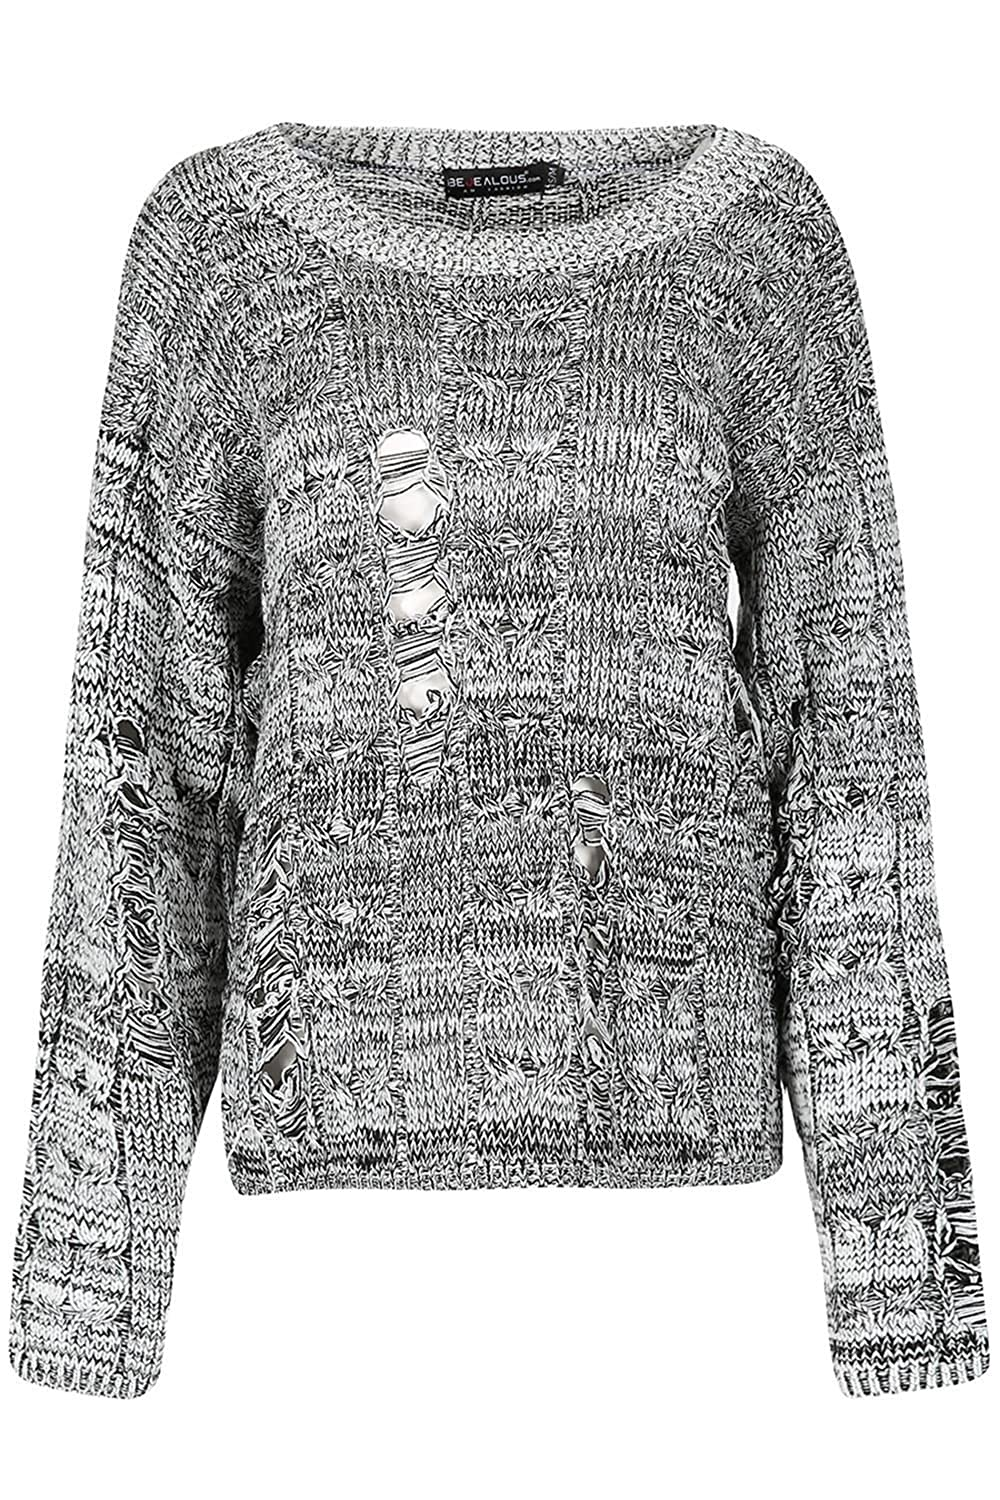 Be Jealous Womens Knit Chunky Cable Distress Oversize Rip Destroyed Baggy Jumper